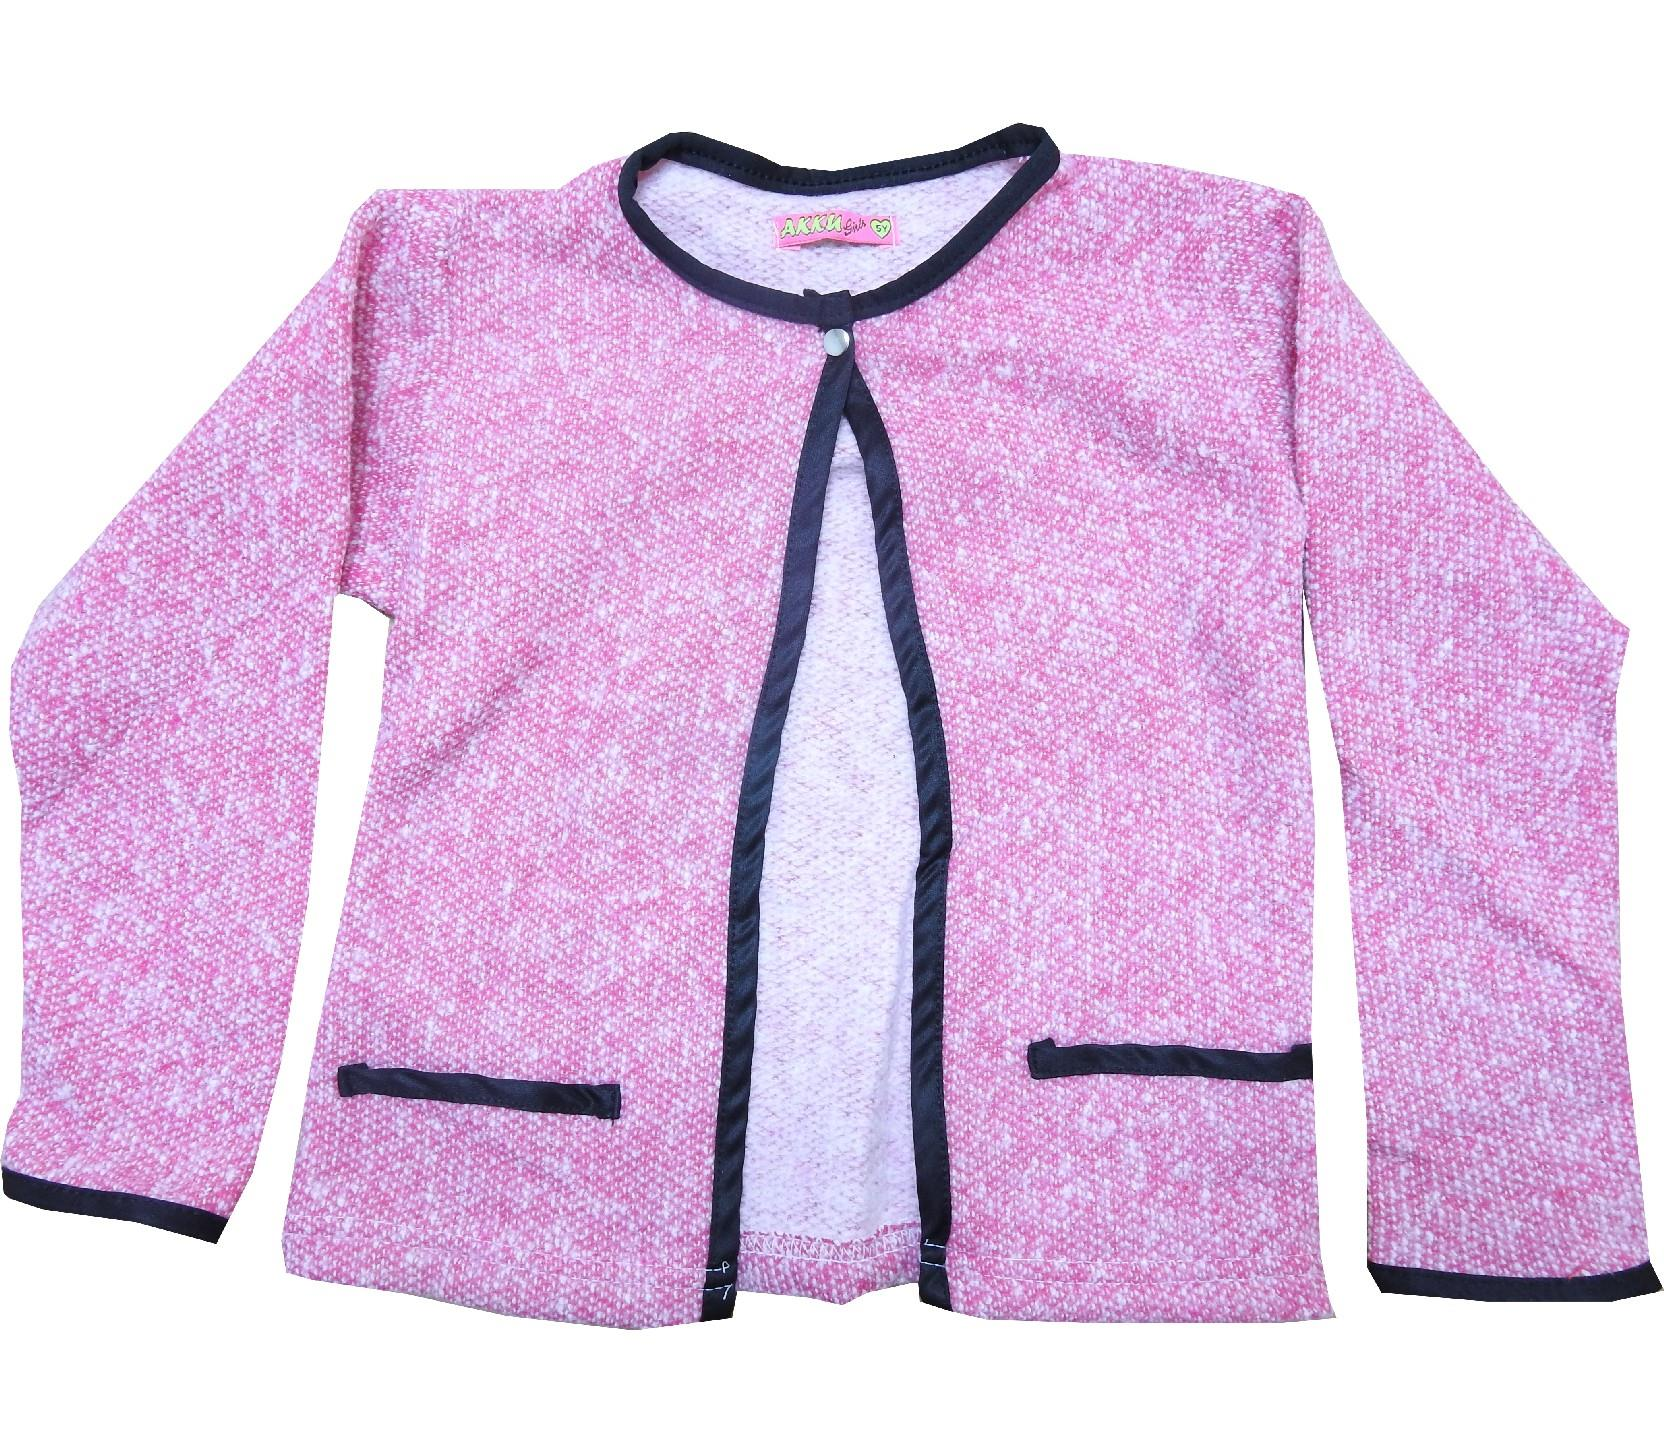 H.AK 53 wholesale knitted cardigan for girl (2-3-4-5 age)